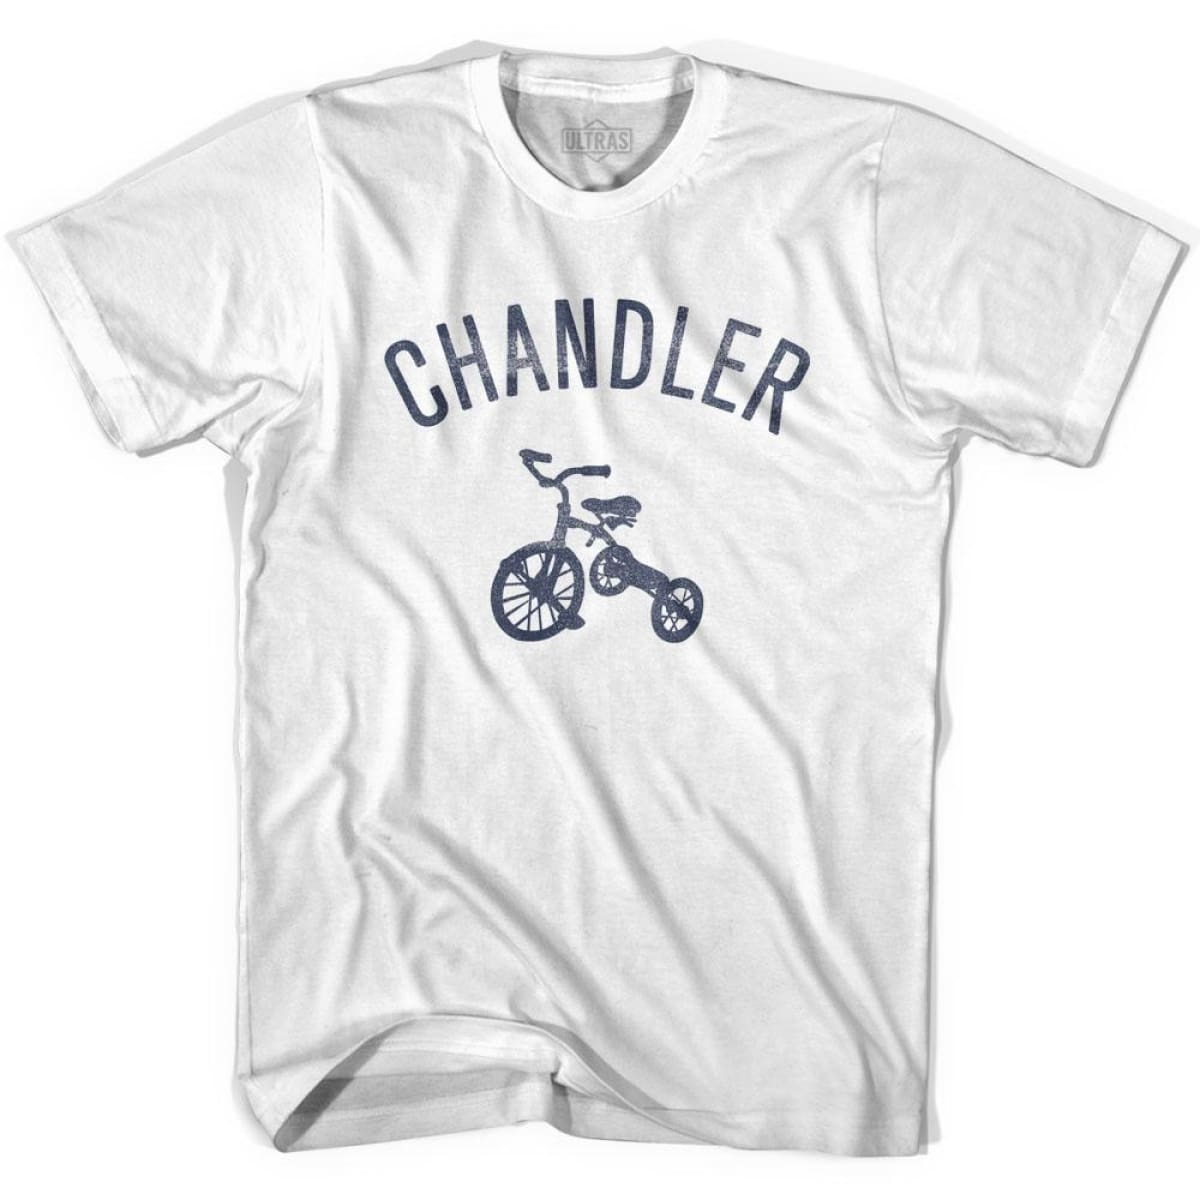 Chandler City Tricycle Womens Cotton T-shirt - Tricycle City